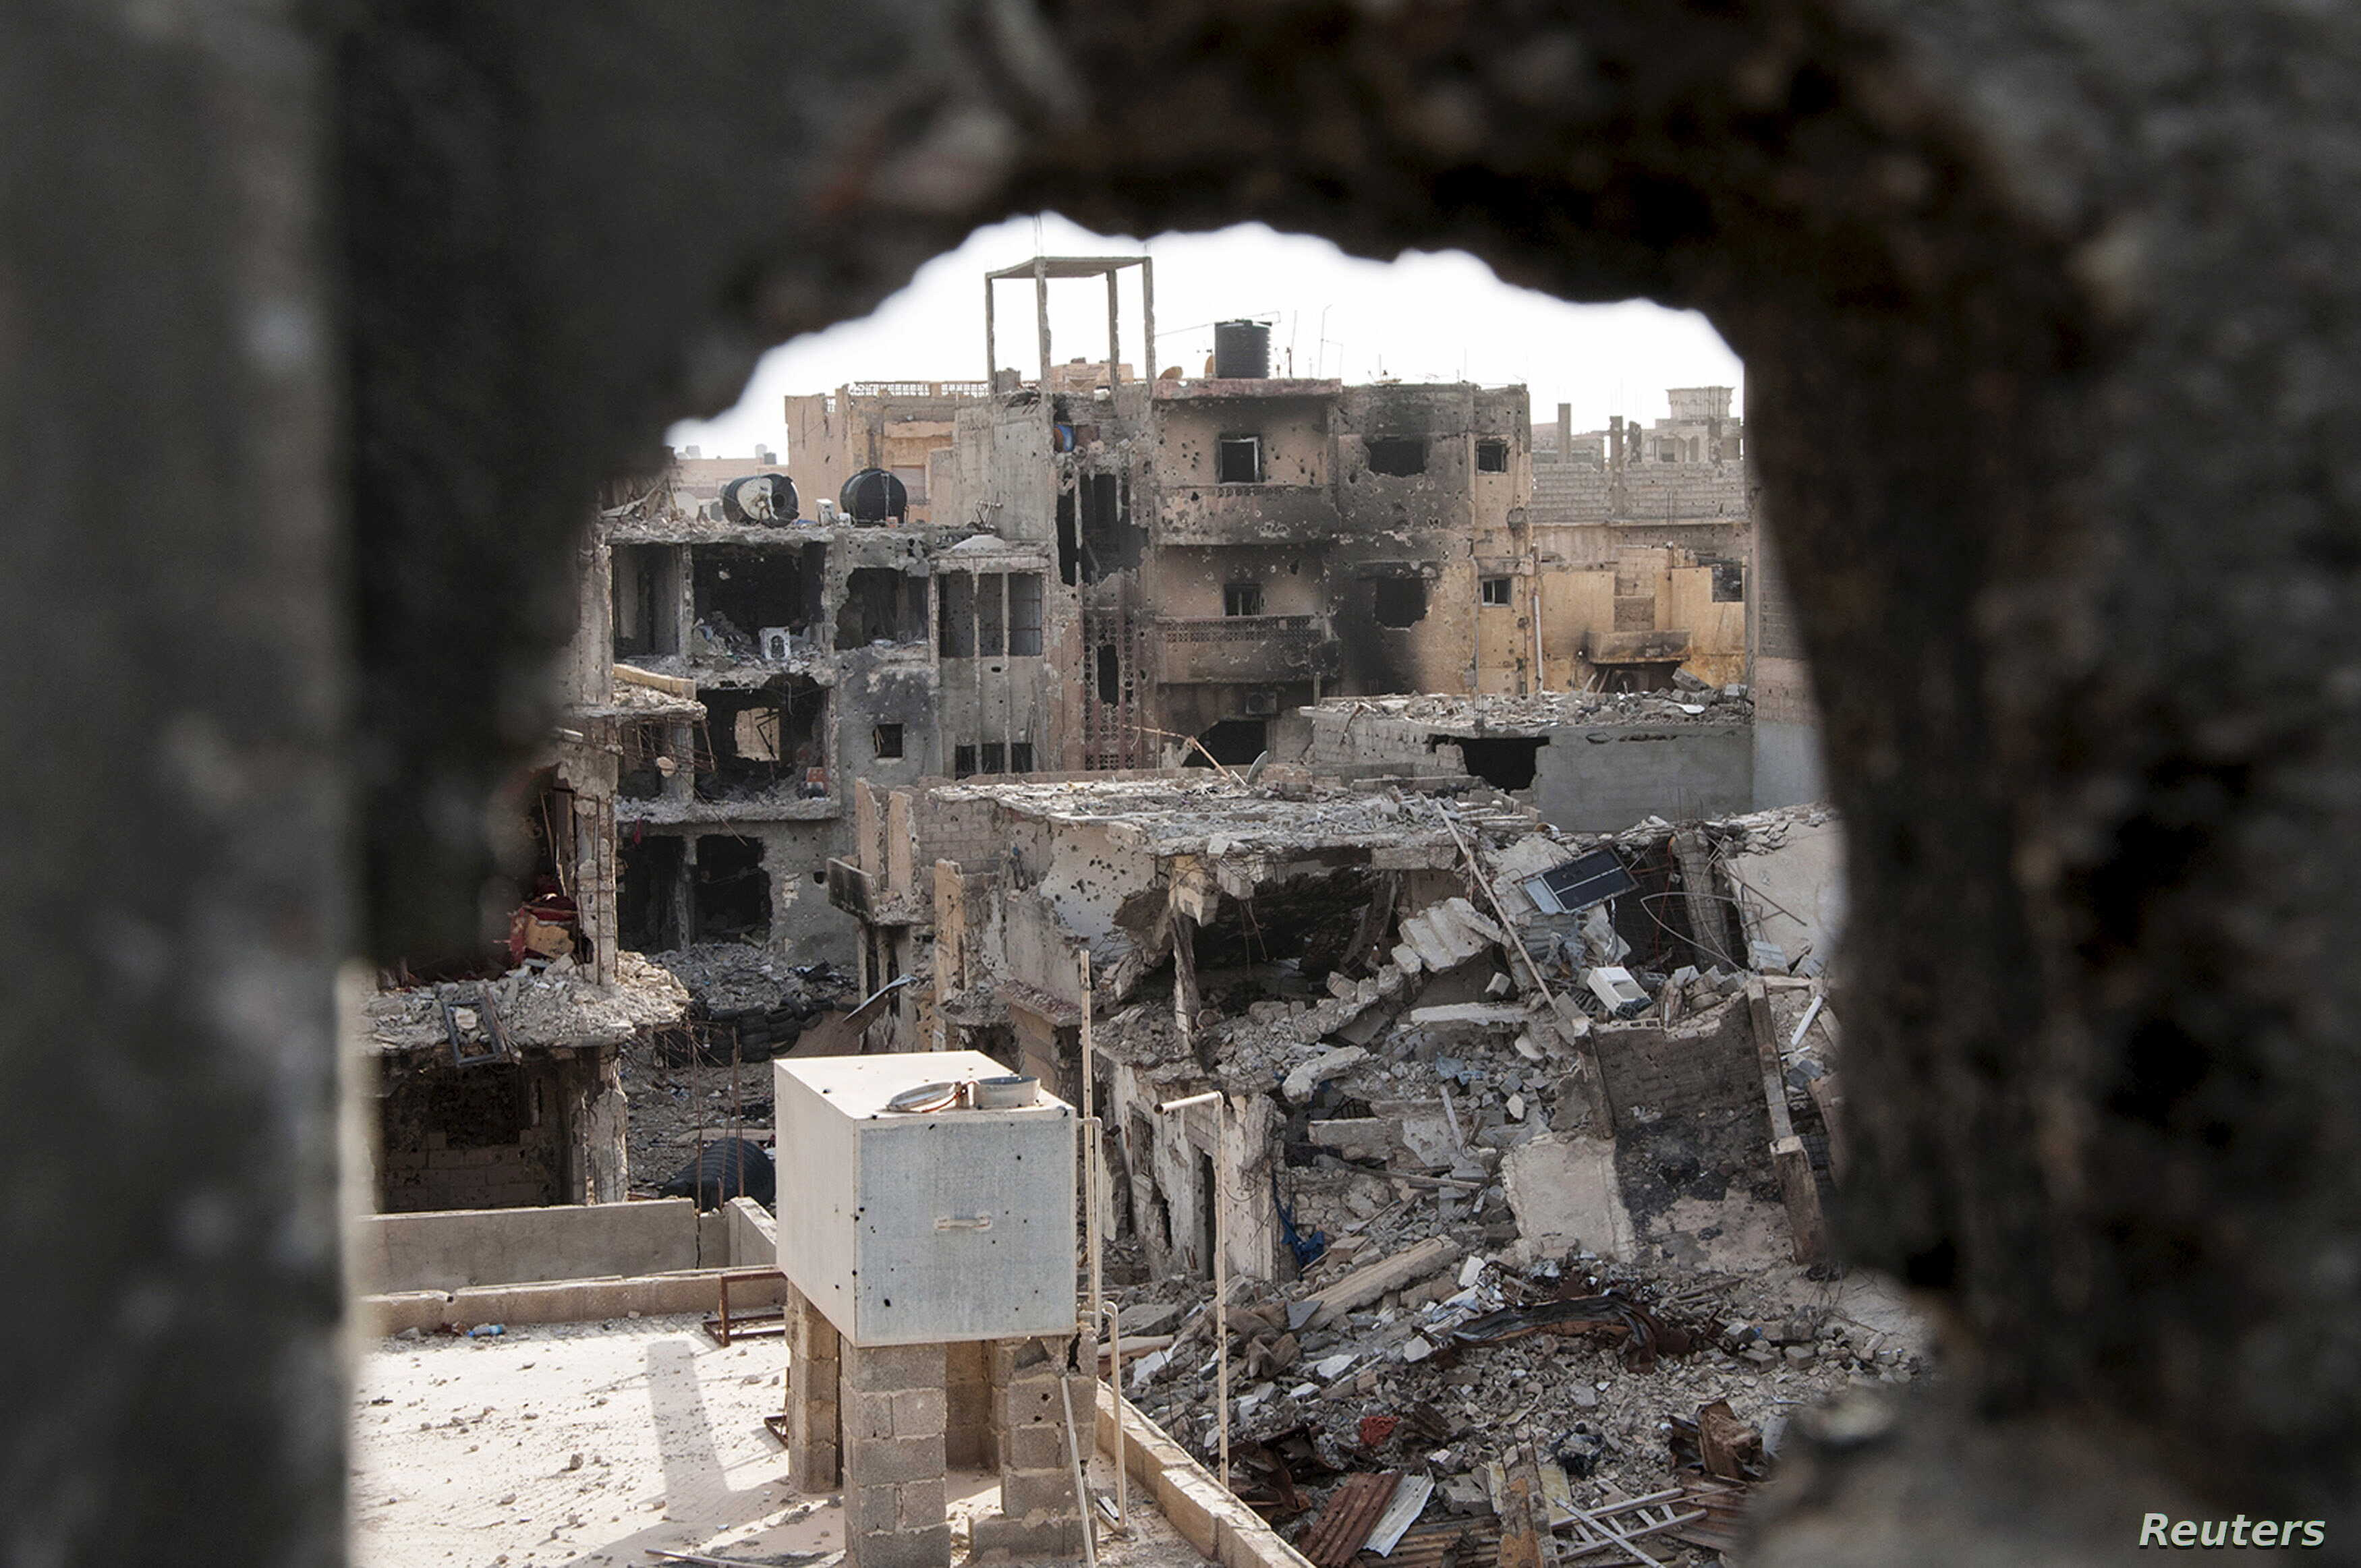 Damaged buildings are pictured after clashes between members of the Libyan pro-government forces and the Shura Council of Libyan Revolutionaries, an alliance of former anti-Gaddafi rebels who have joined Islamist group Ansar al-Sharia, in Benghazi, L...